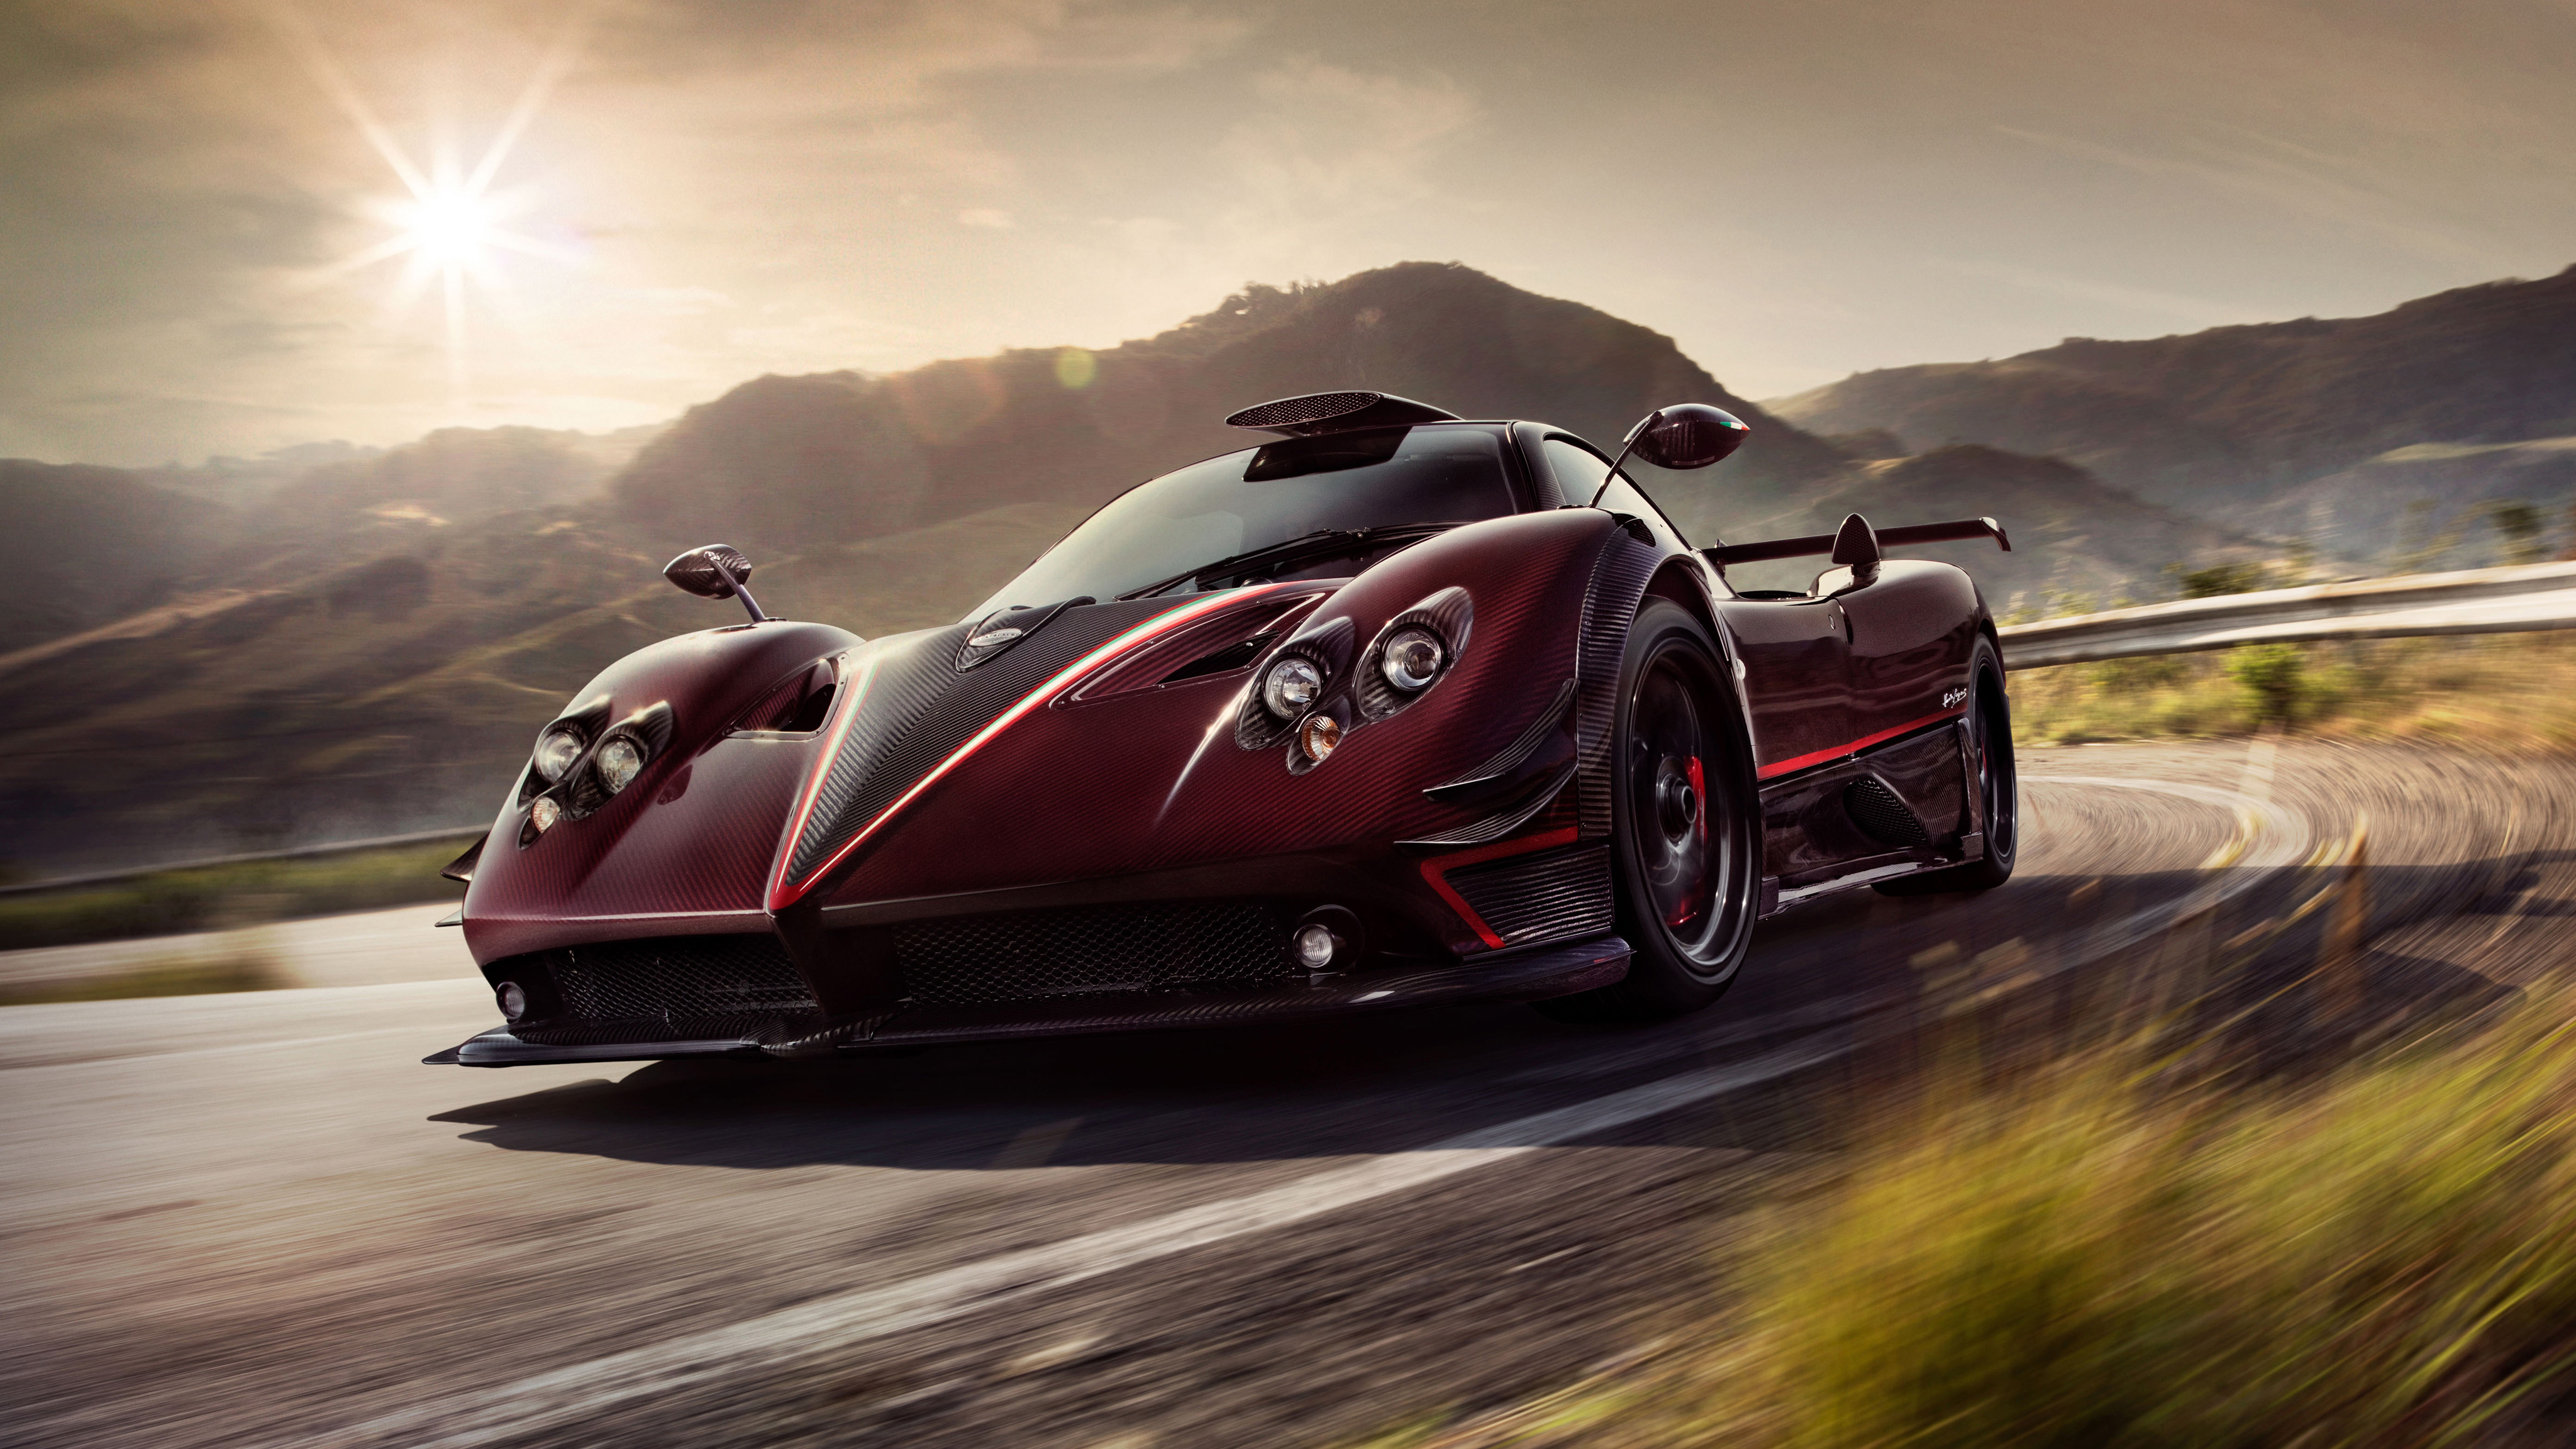 Pagani Wallpapers and Background Images   stmednet 4096x2304